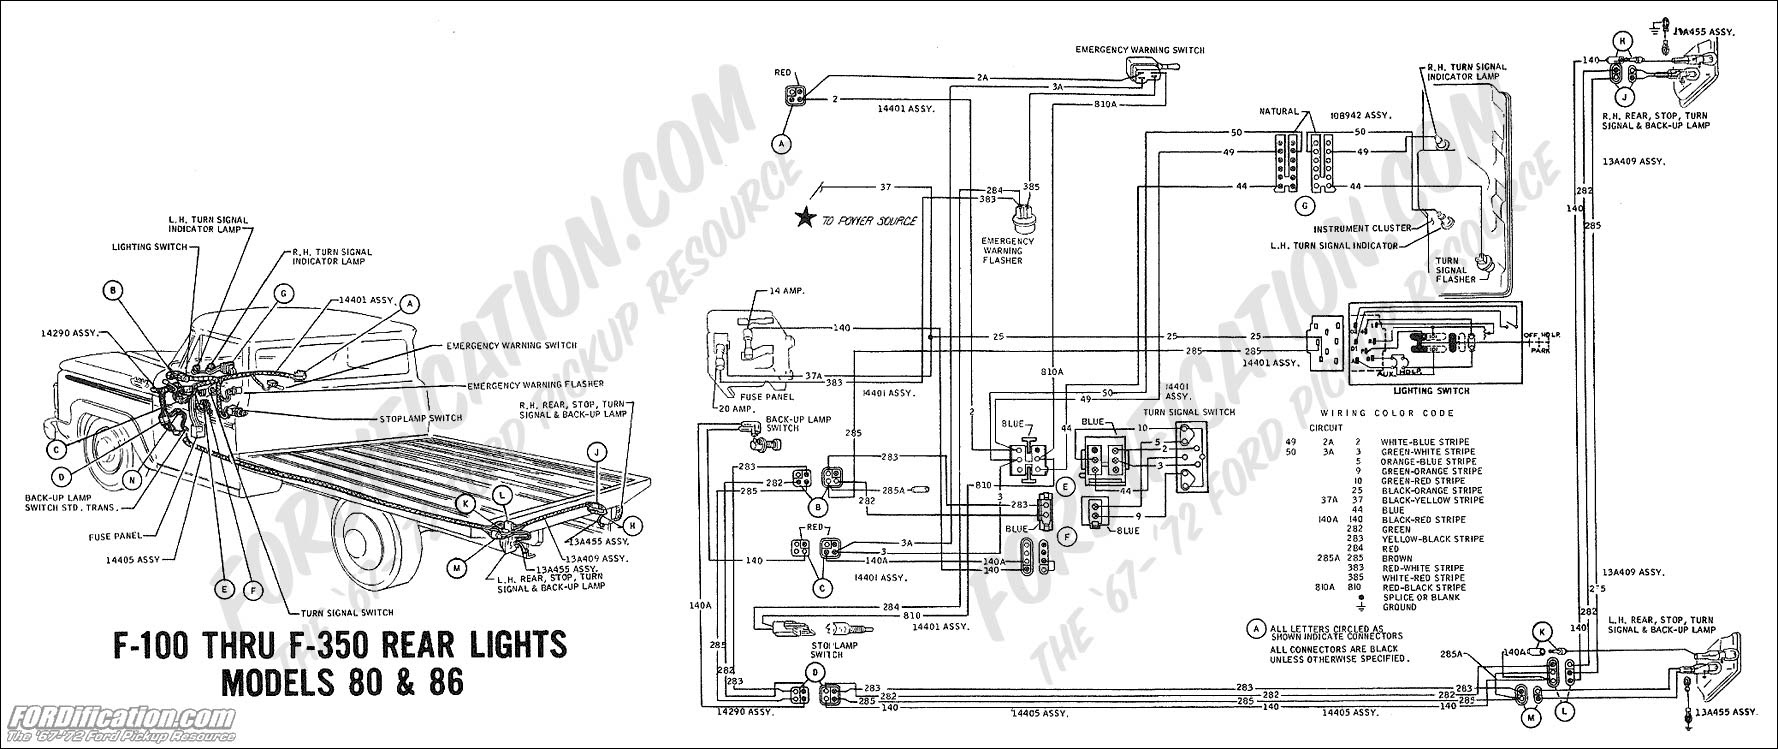 Wire Diagram For 1983 Ford F 350 Wiring Diagram Frankmotors Es